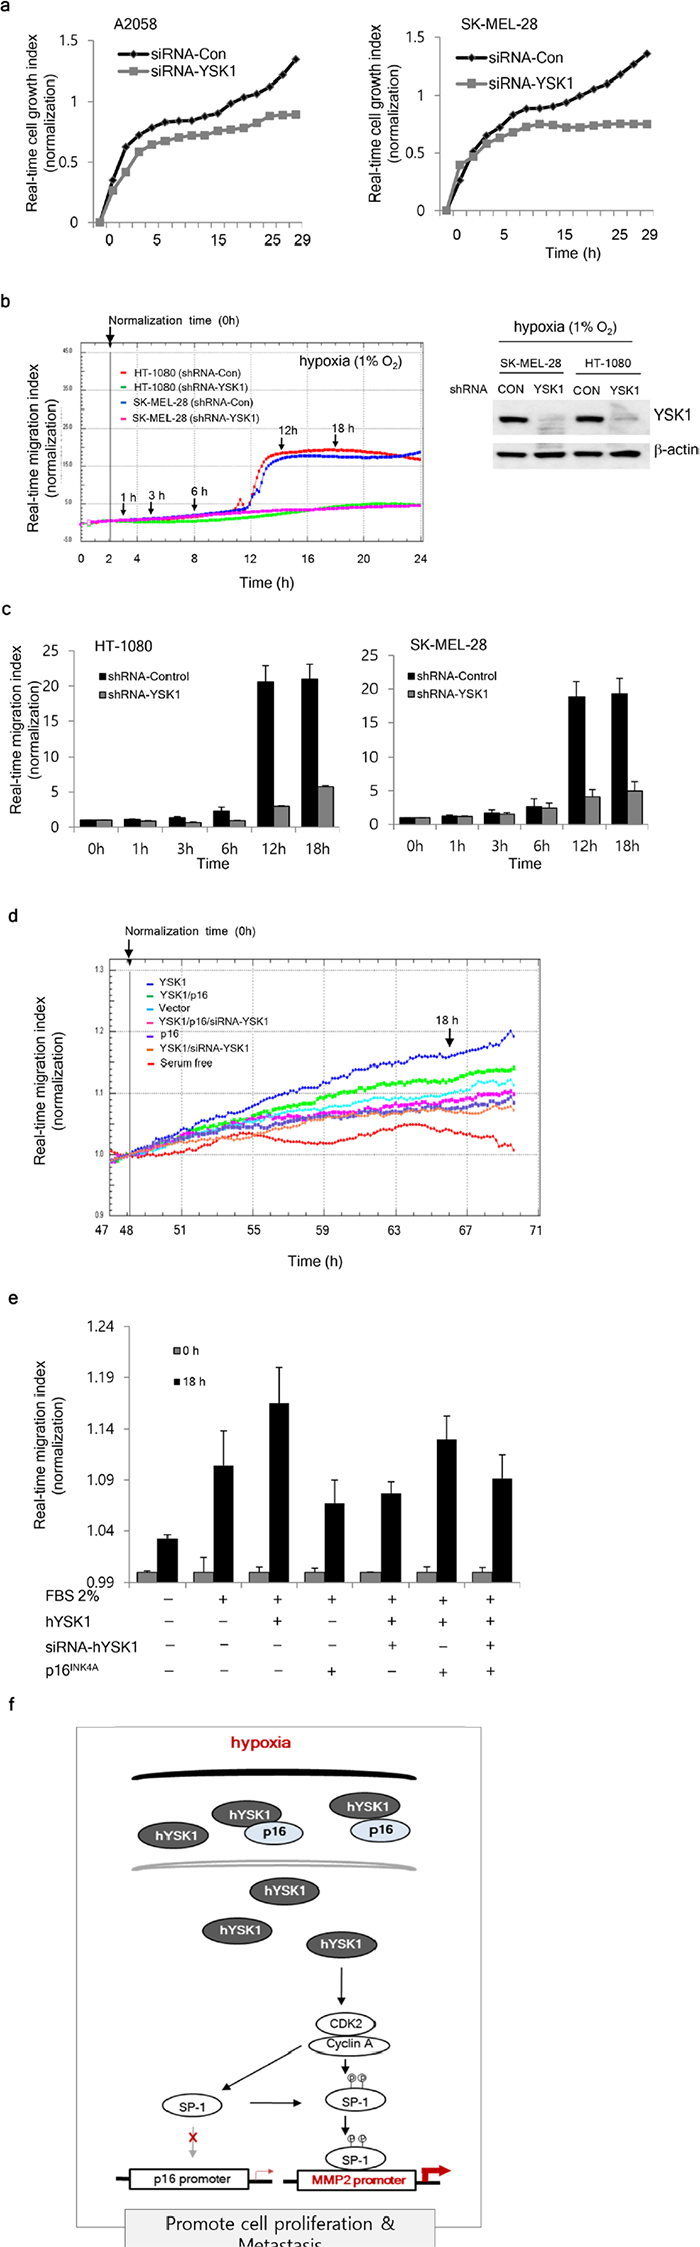 Physiologic effect of the interaction of hYSK1 and p16INK4a in cancer cells.